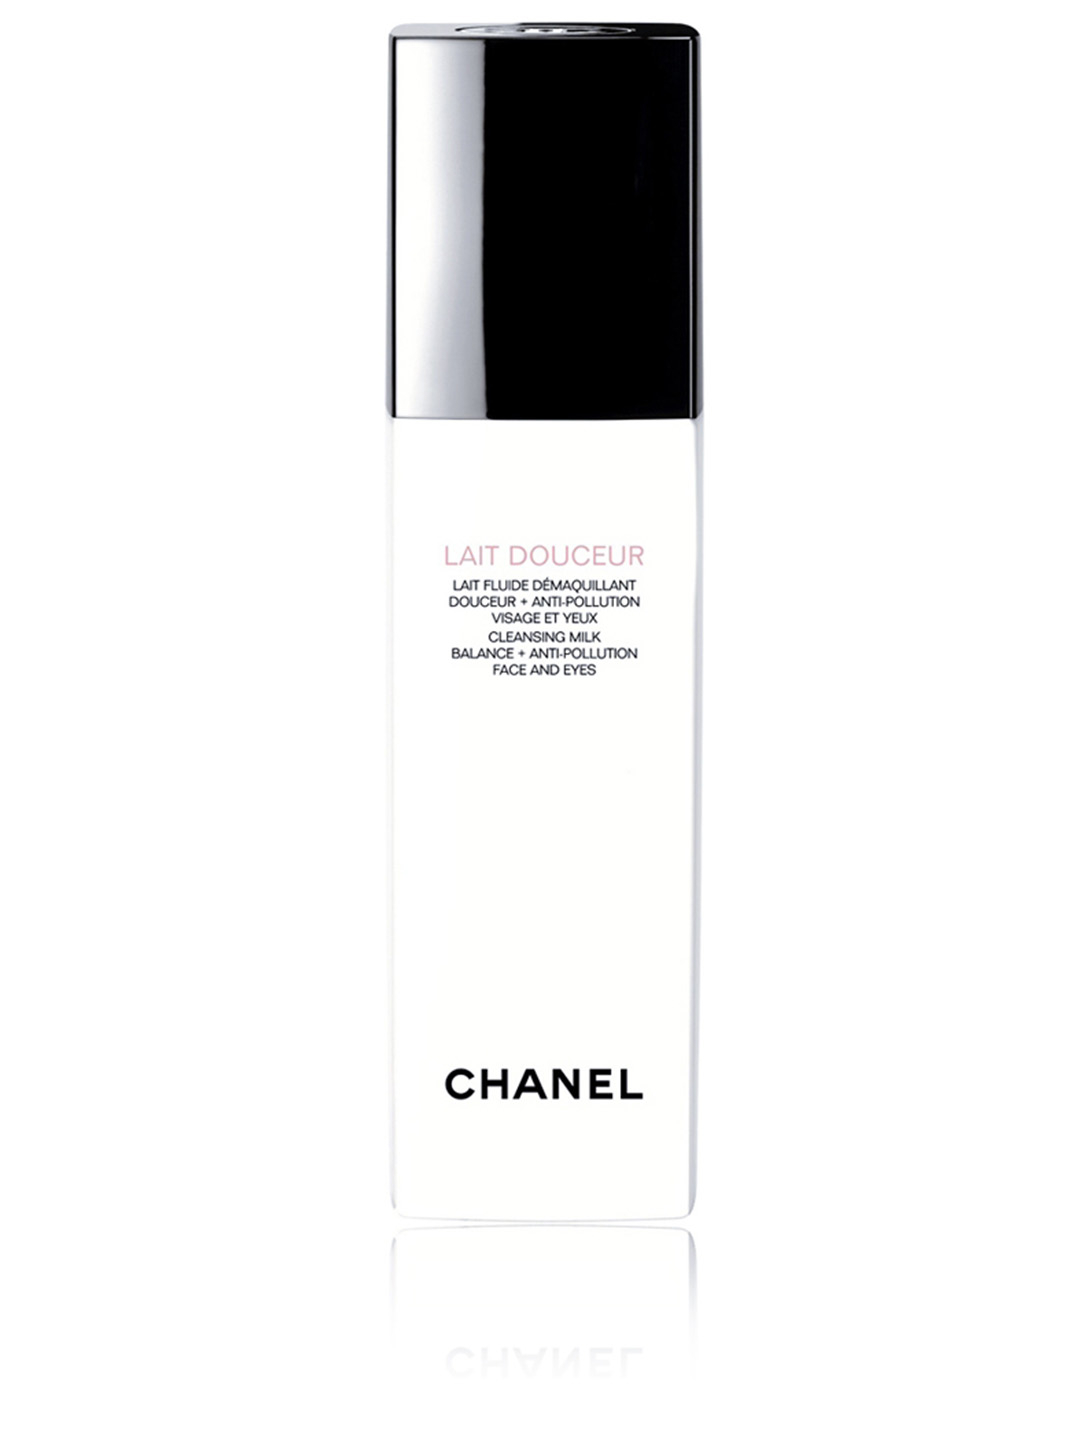 CHANEL Cleansing Milk Balance + Anti-Pollution Face and Eyes CHANEL